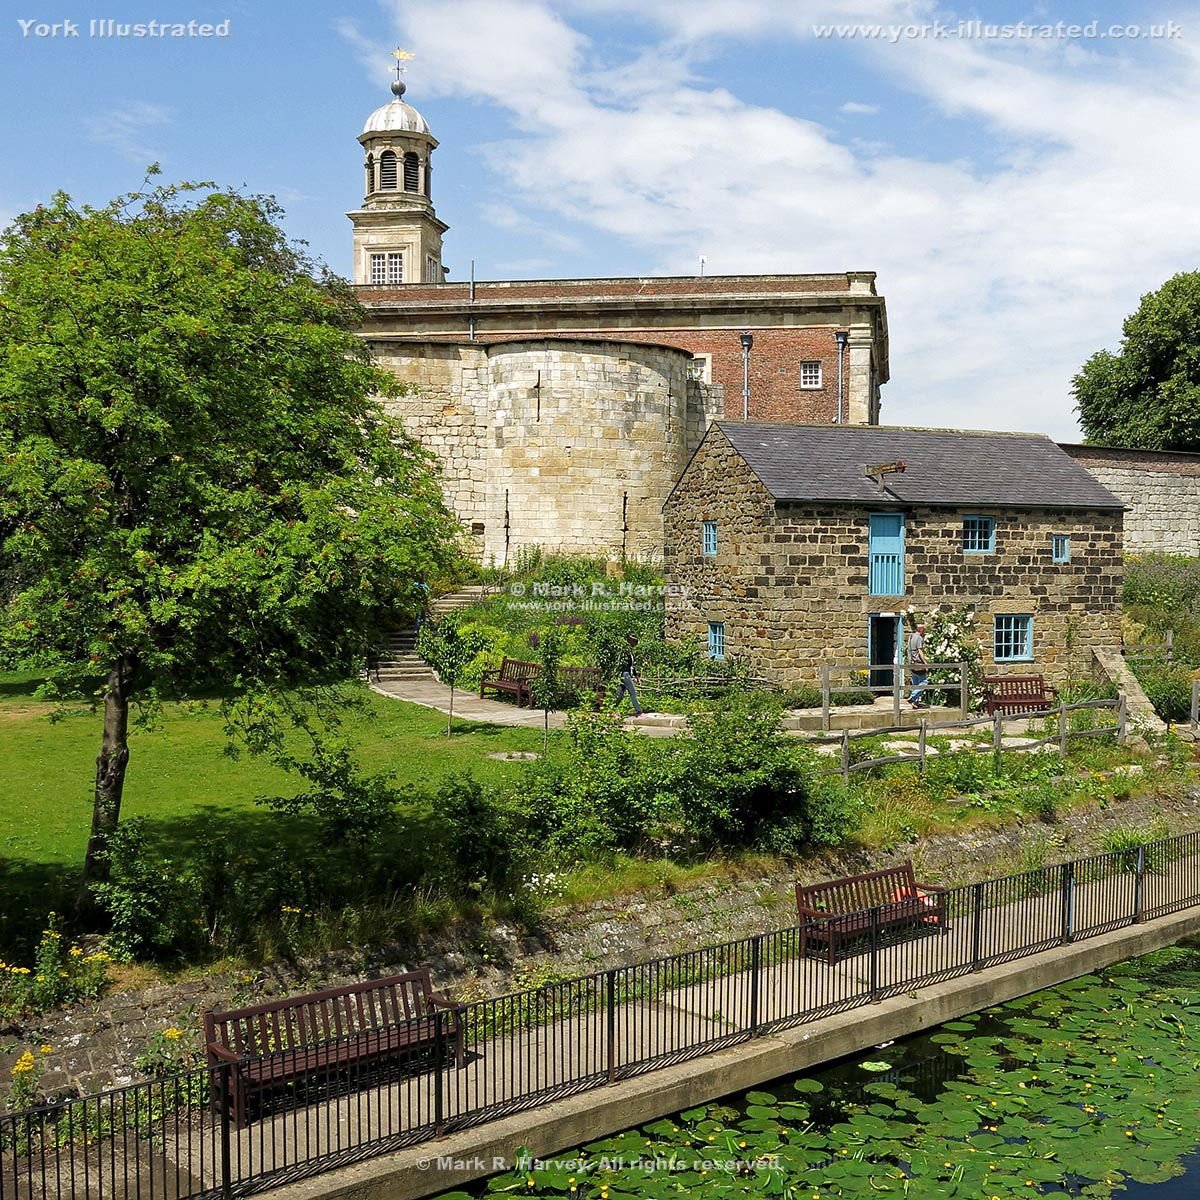 Photograph: Inner bailey walls and southeast tower of York Castle, Raindale Mill, River Foss.